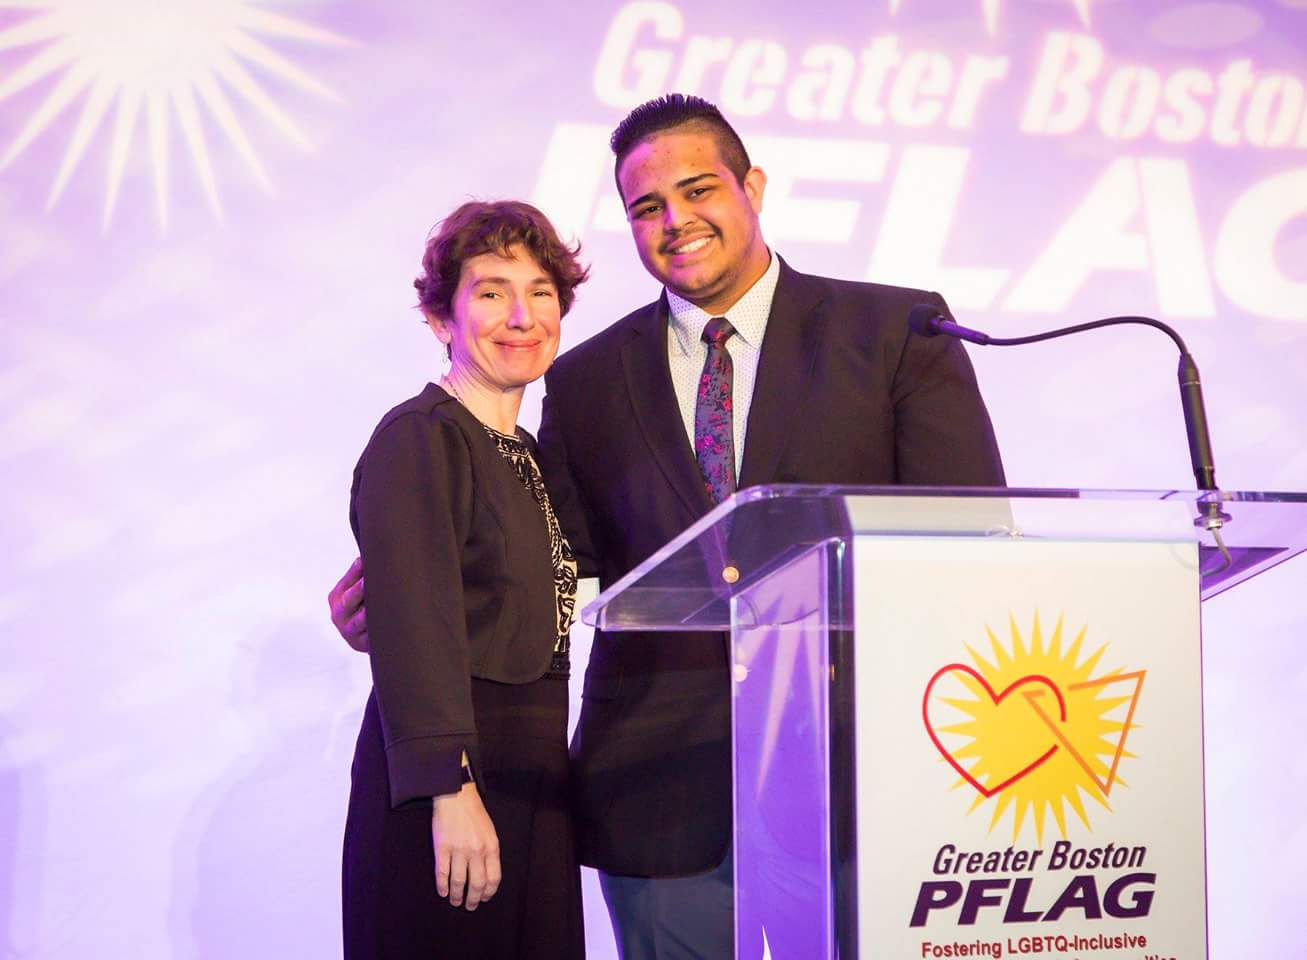 Left to right: Executive Director of Greater Boston PFLAG Valerie Frias and Northeast Metro Tech senior Christian DeJesus Franco at the Greater Boston PFLAG's Pride and Passion dinner. (Courtesy Photo Northeast Metro Tech)